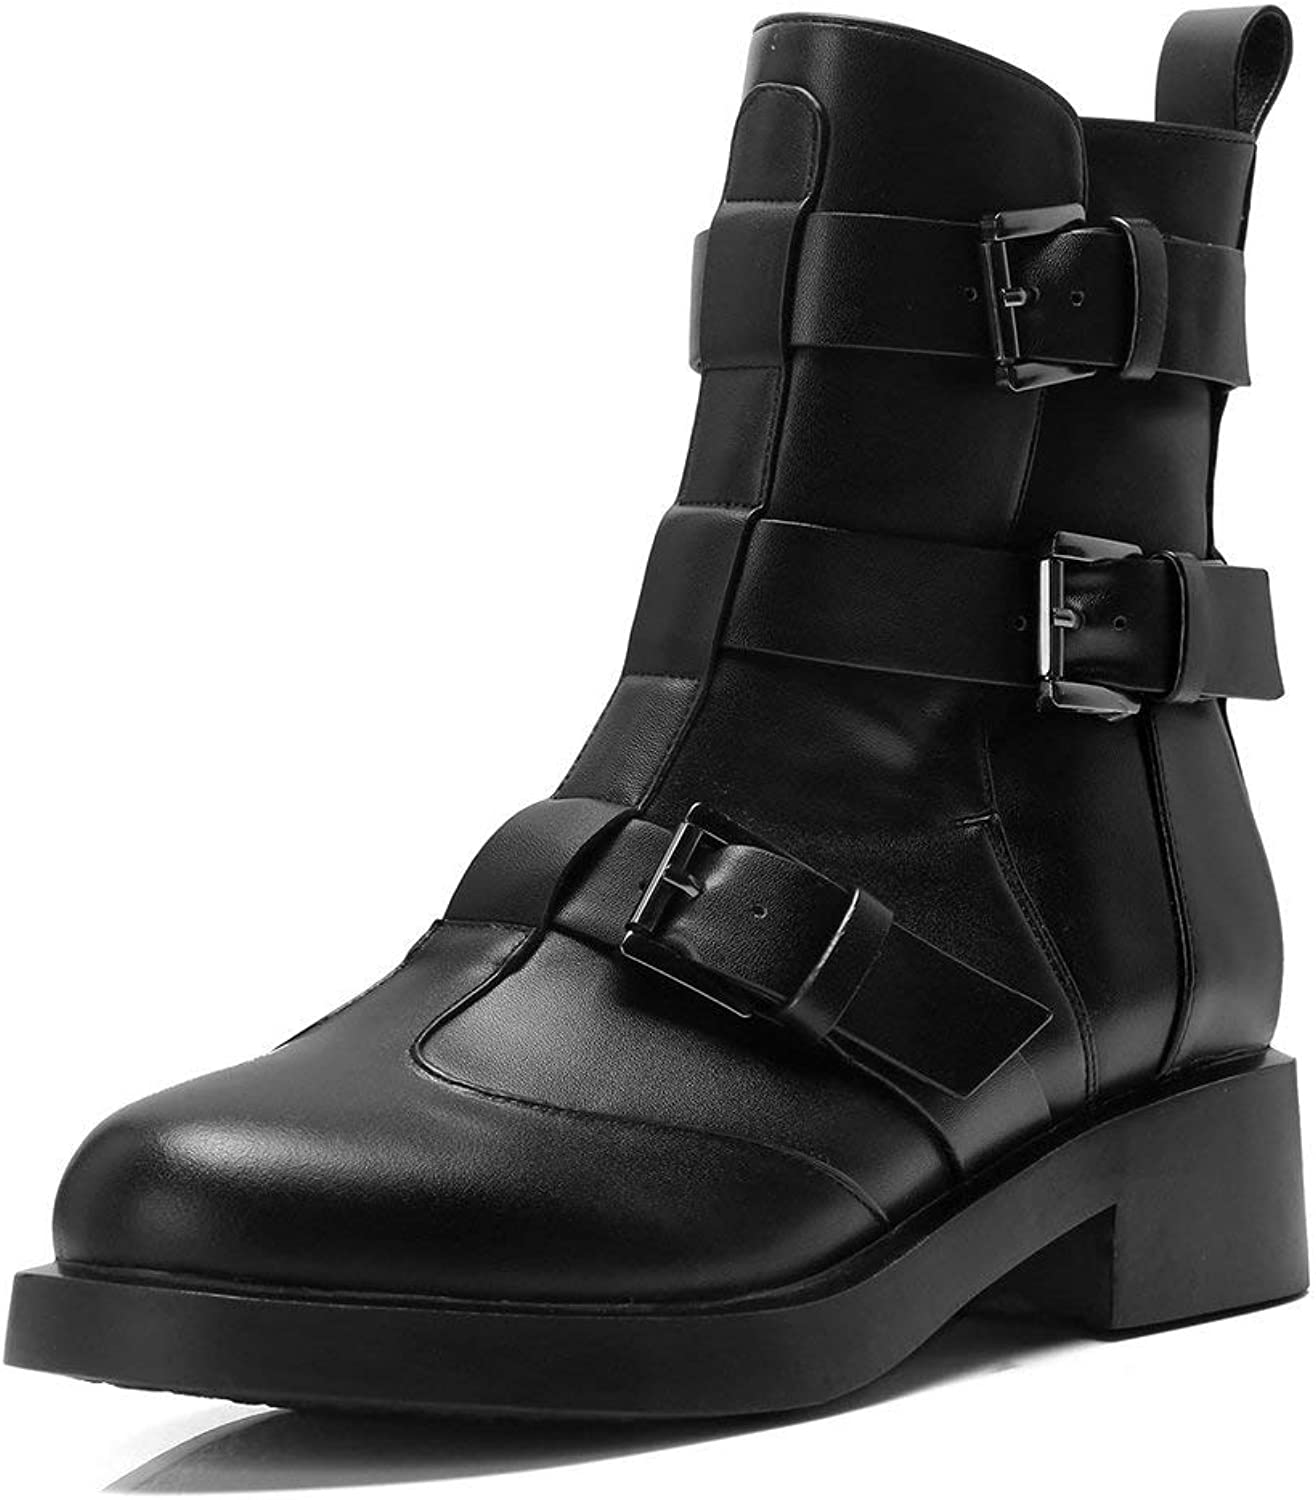 AnMengXinLing Ankle High Motorcycle Boot Women Low Block Heel Suede Leather Buckle Strap Combat Boot Slip On Biker shoes